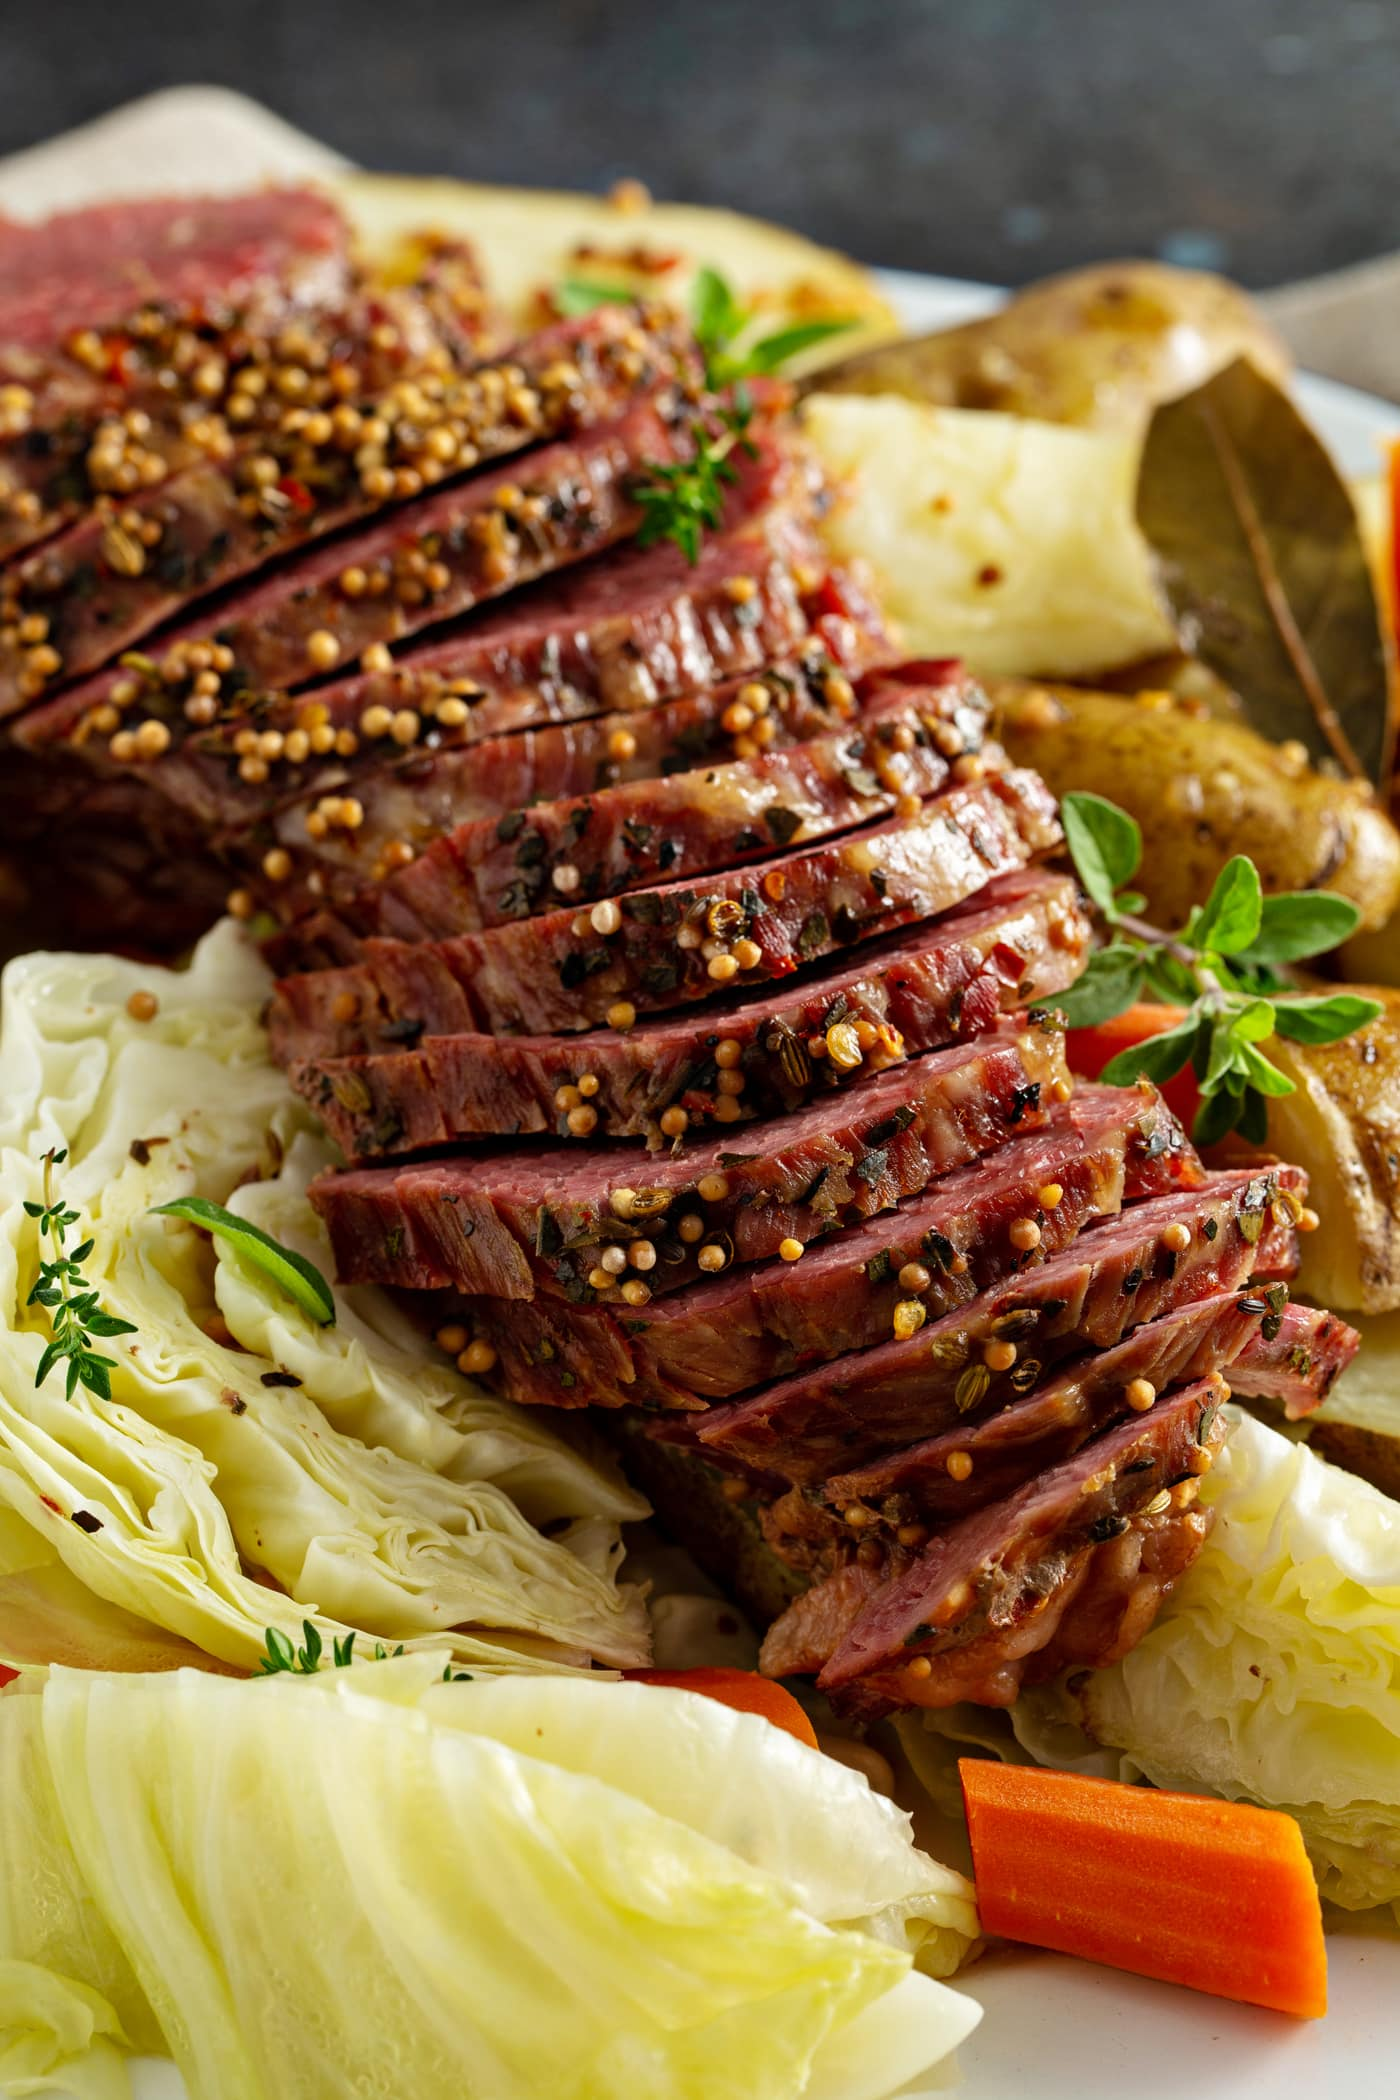 Sliced corned beef resting on top of potatoes and cabbage.